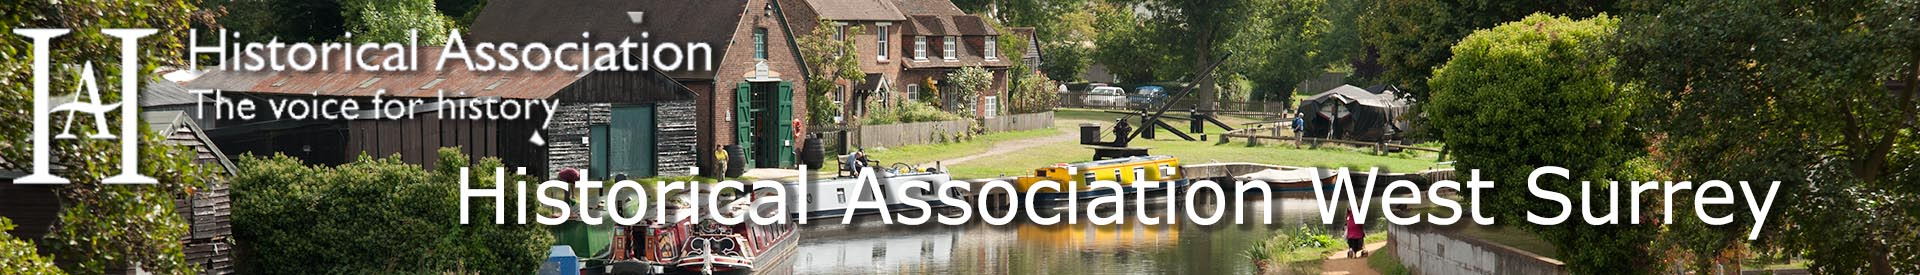 West Surrey Historical Association